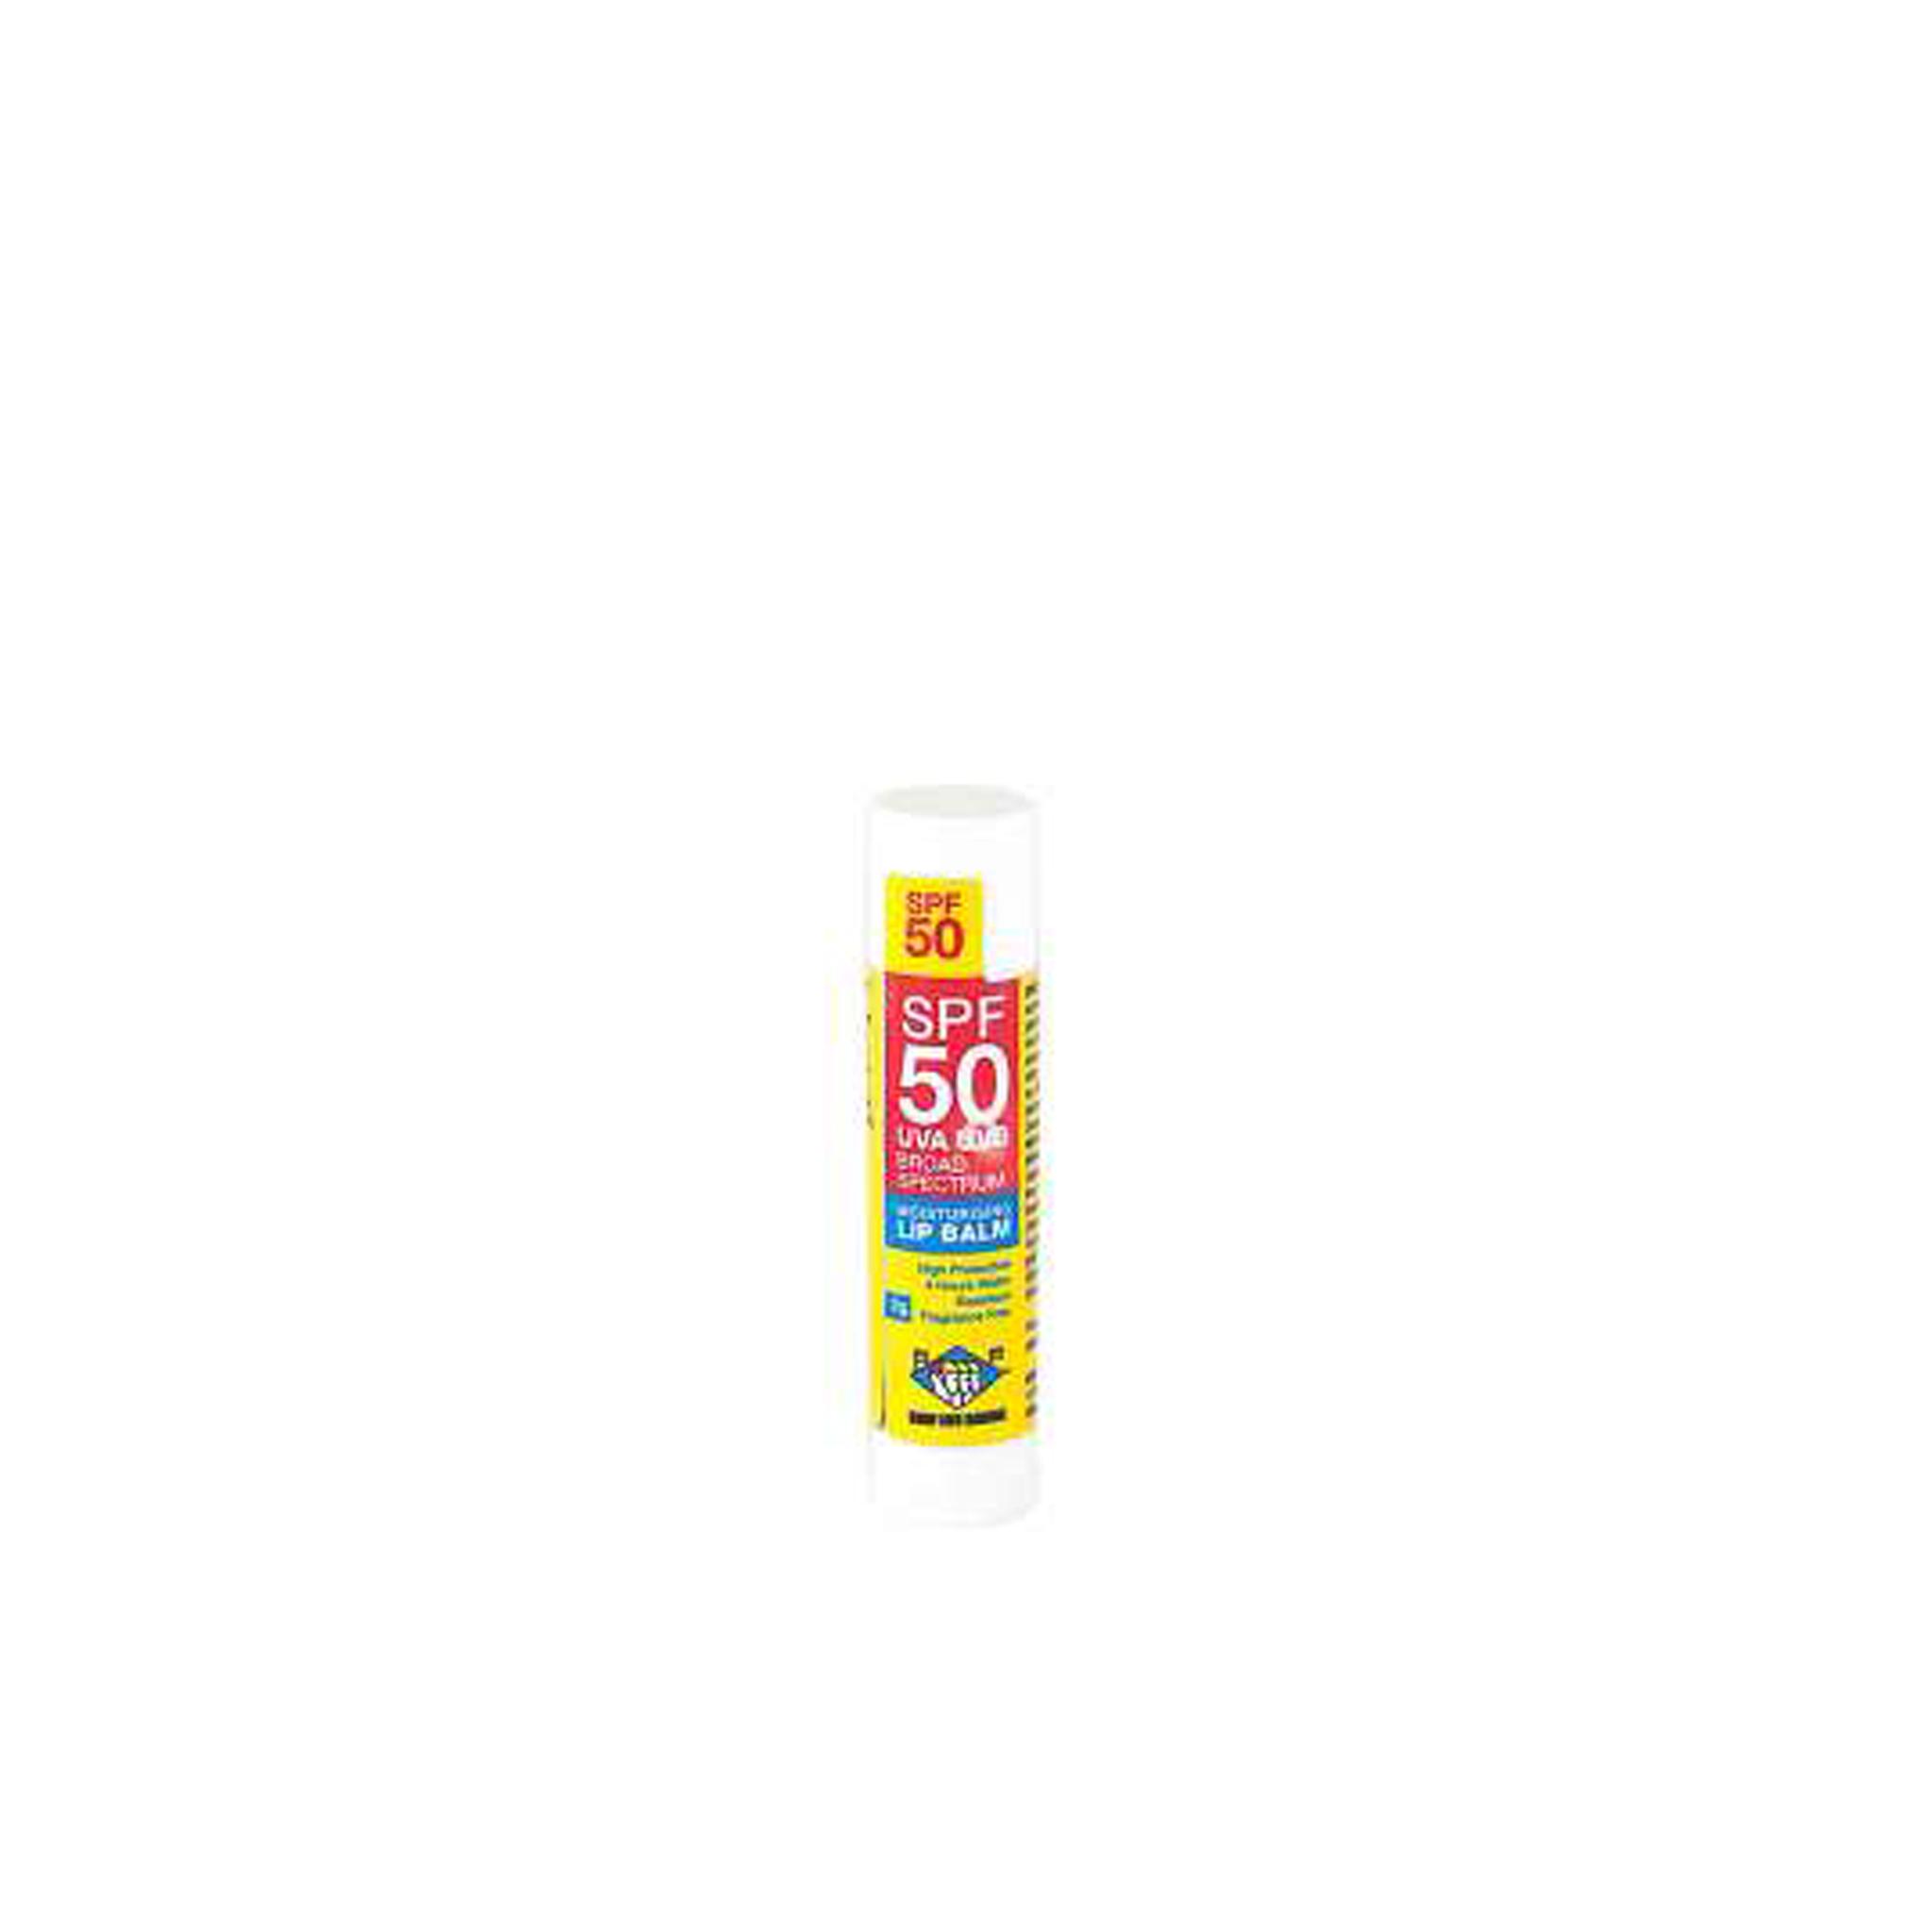 Surf Life Saving NZ Sunscreen Lip Balm SPF50